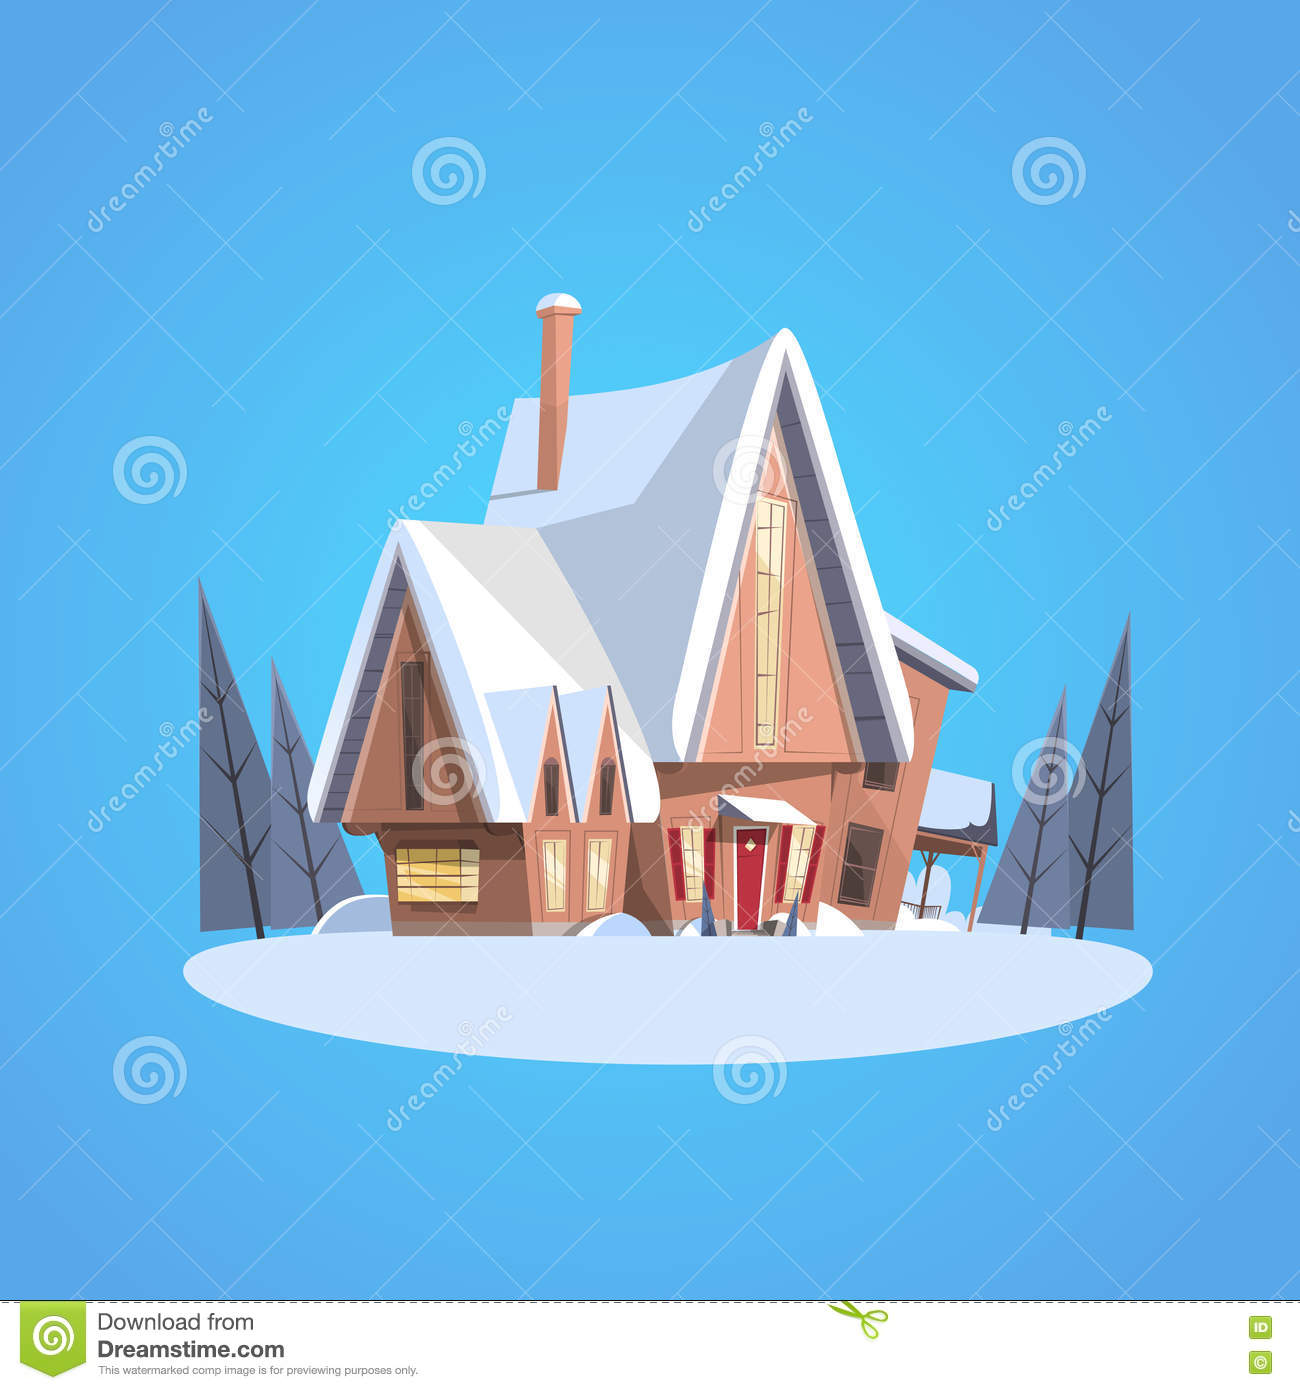 snowy village house happy new year merry christmas greeting card banner